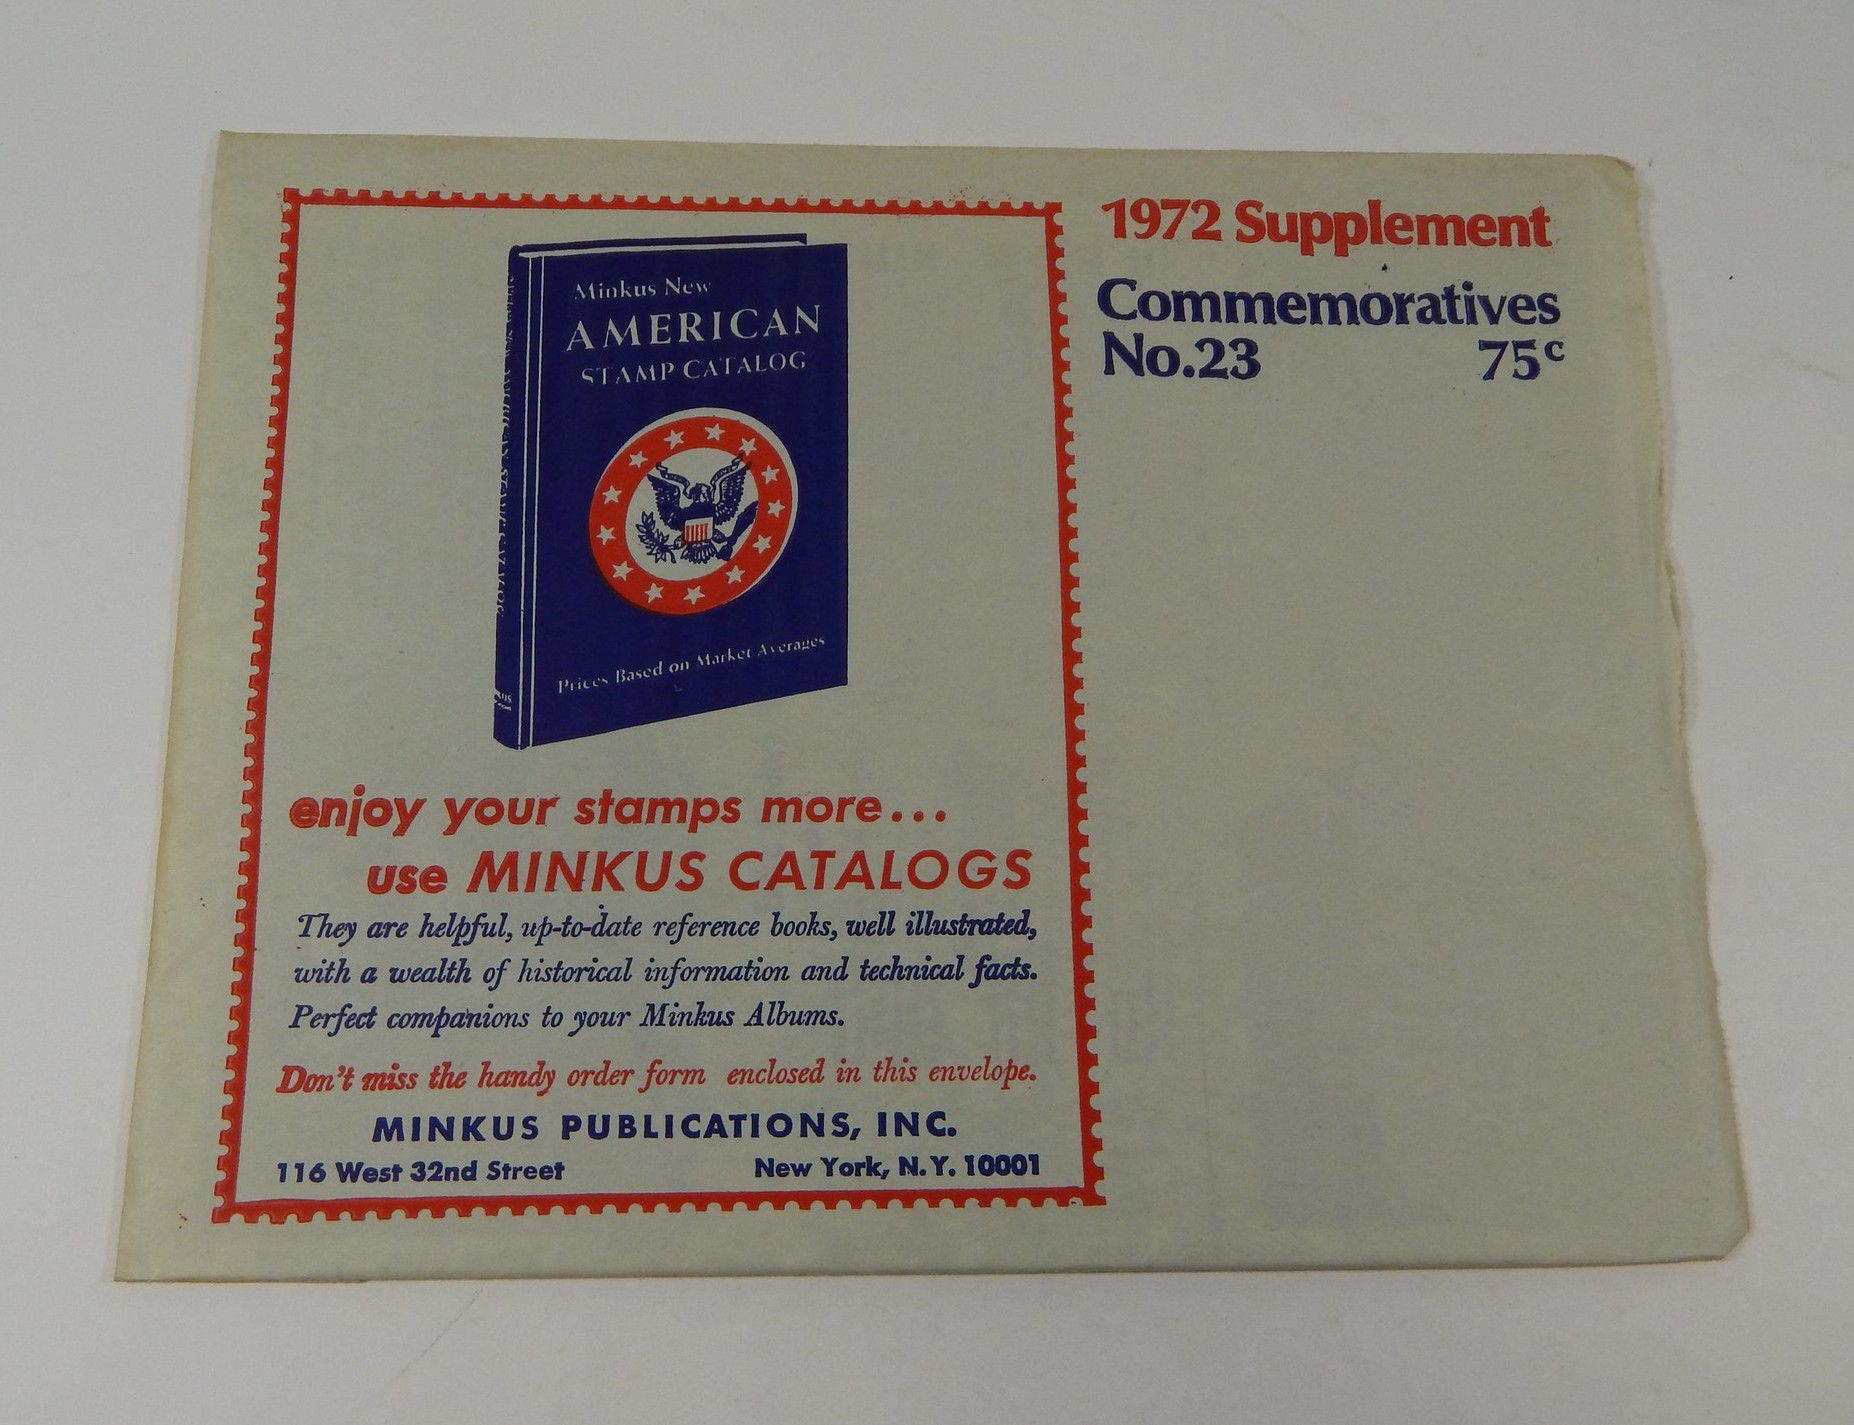 Minkus Commemoratives No 23 1972 Supplement Stamp Album Pages Ebay